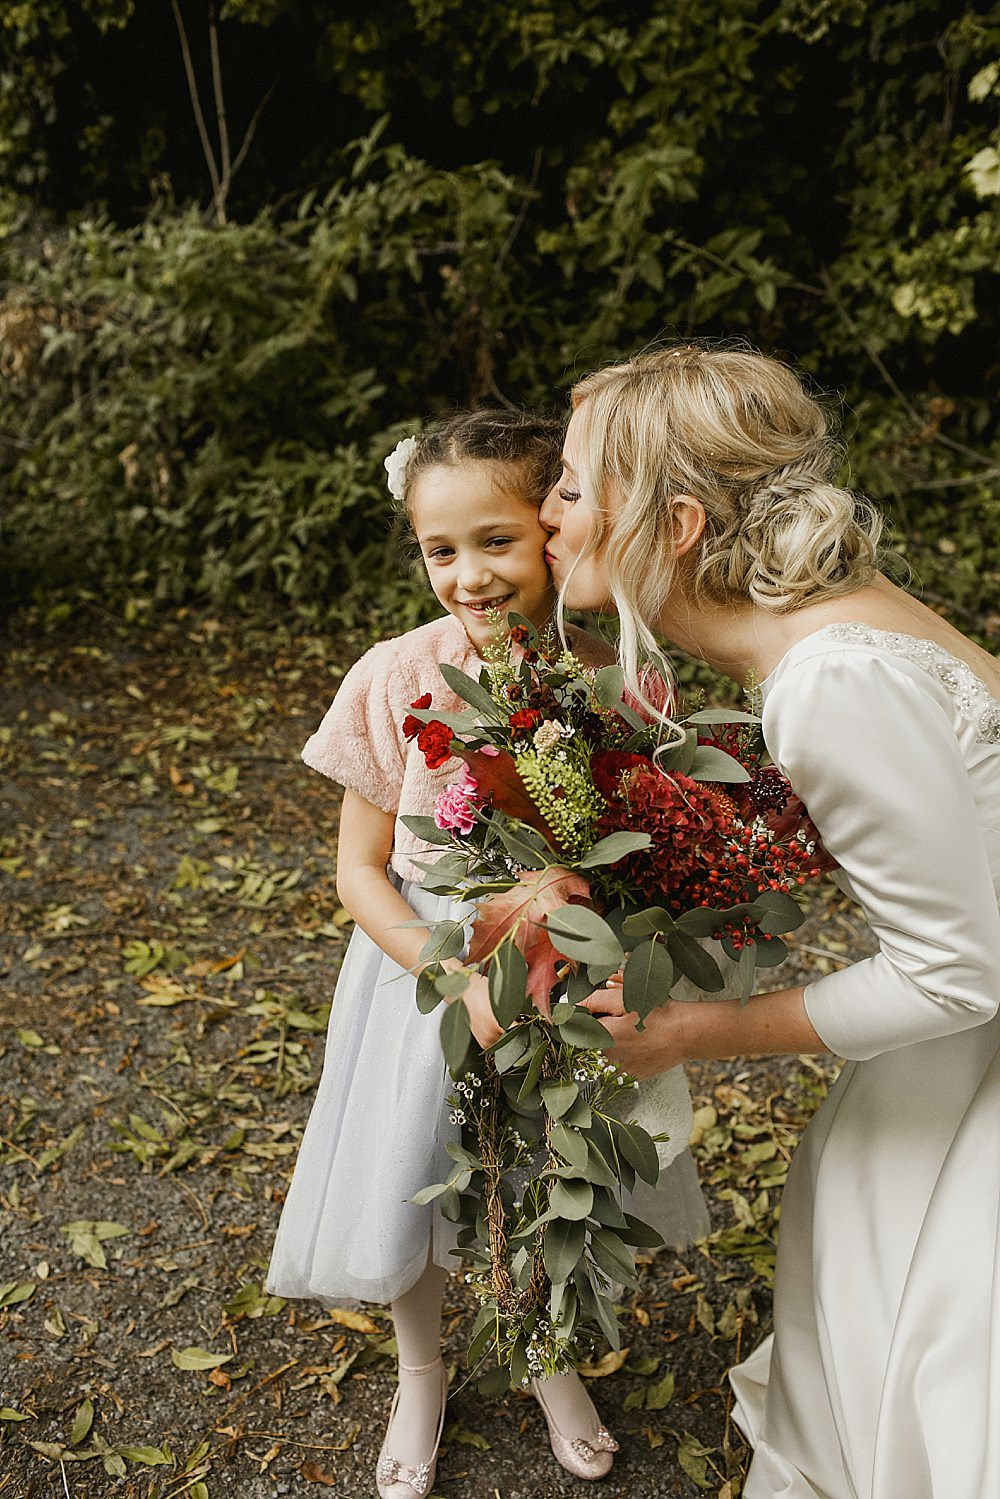 Flower Girl Dress Cardigan Abbeydale Picture House Wedding We Are Da Silva